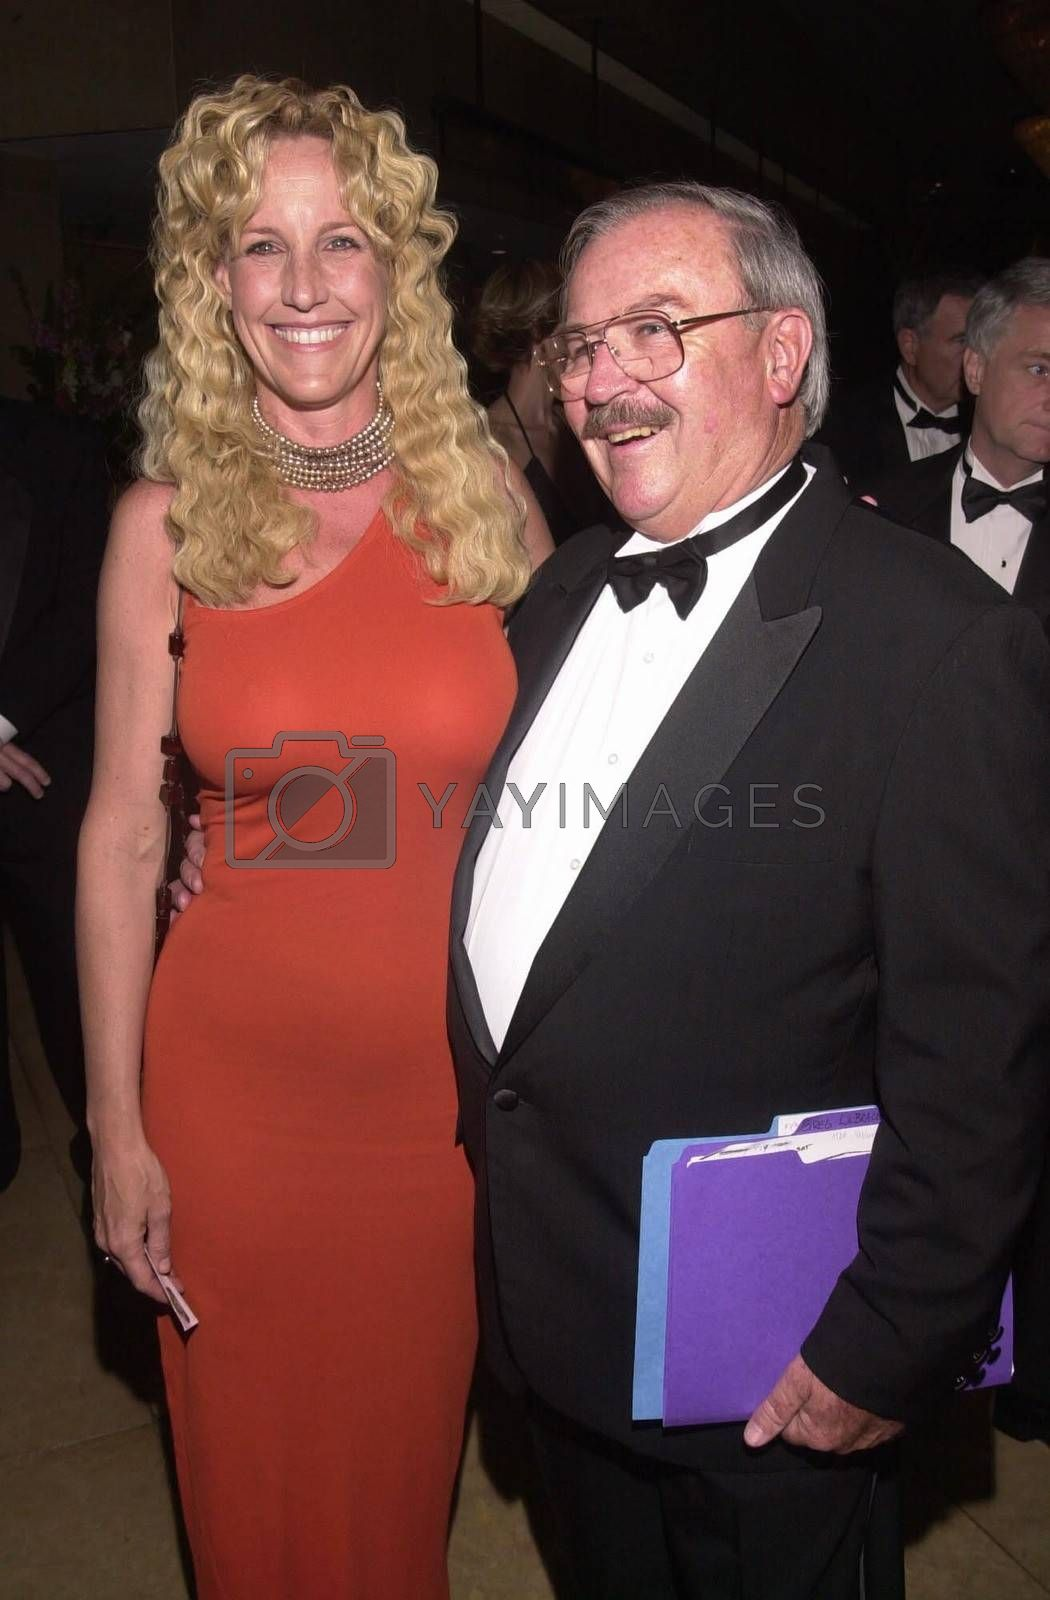 Erin Brockovich-Ellis and Gregory Labrache at the Night Under The Stars Dinner-Dance to raise money for MS. Beverly Hills, 04-29-00